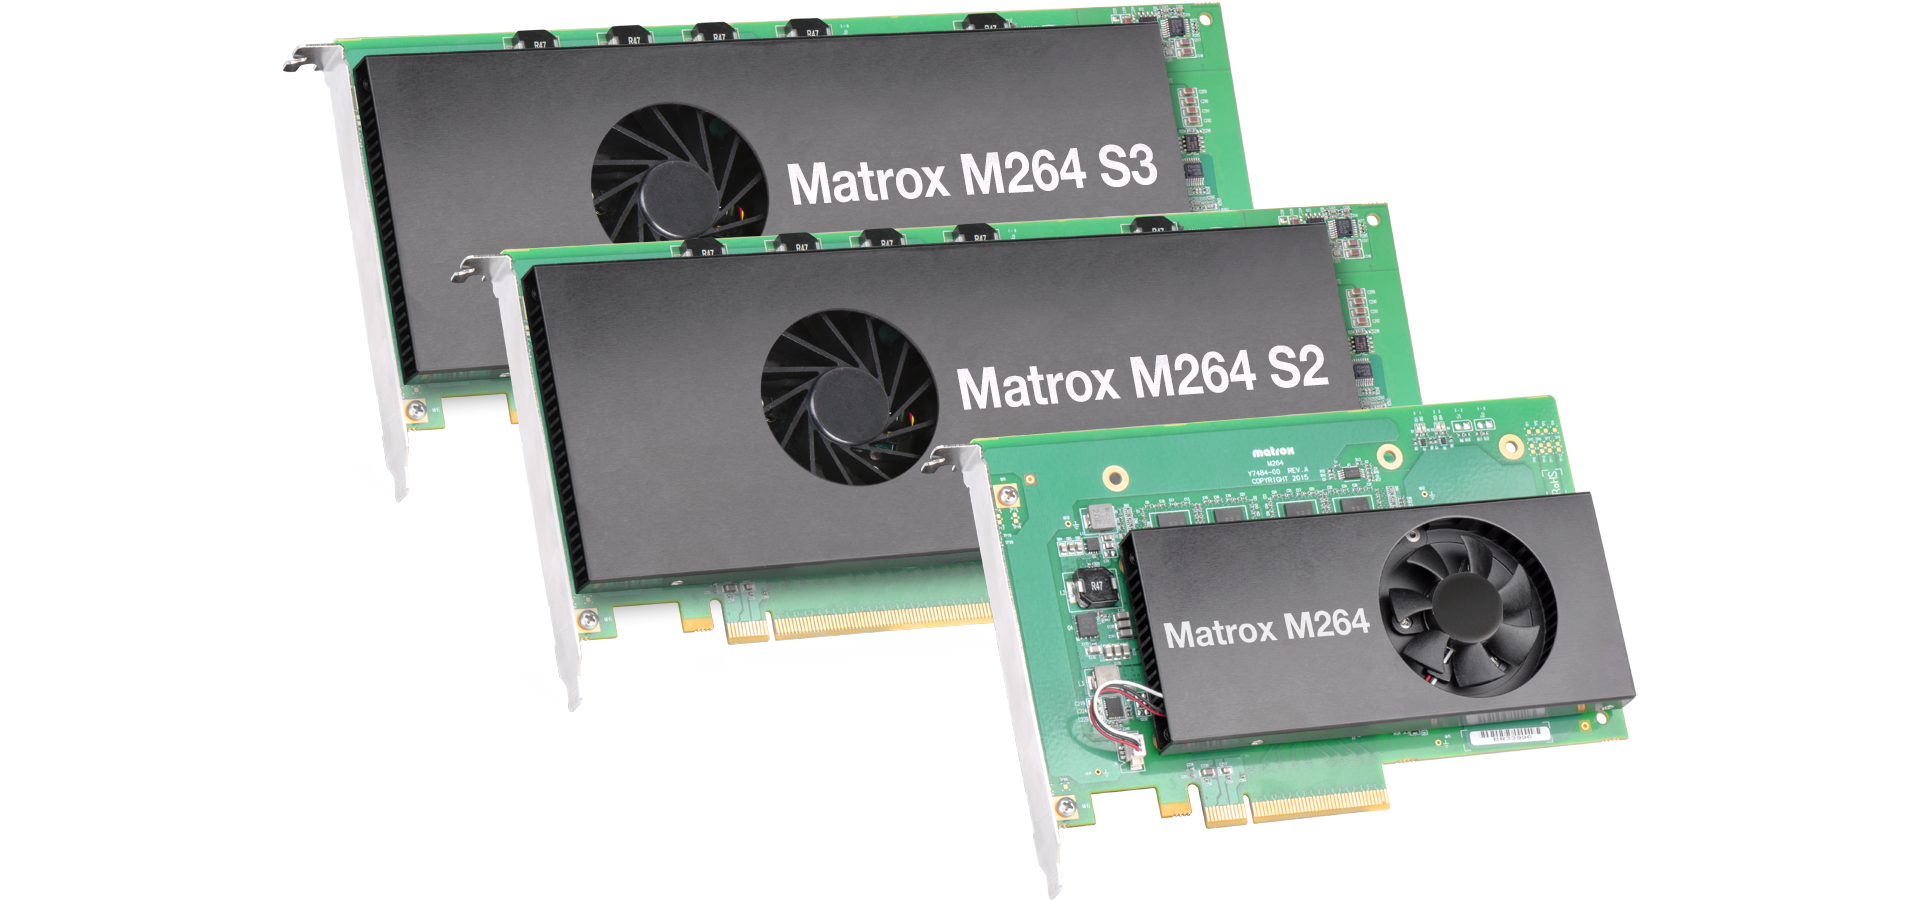 The Matrox M264 Family